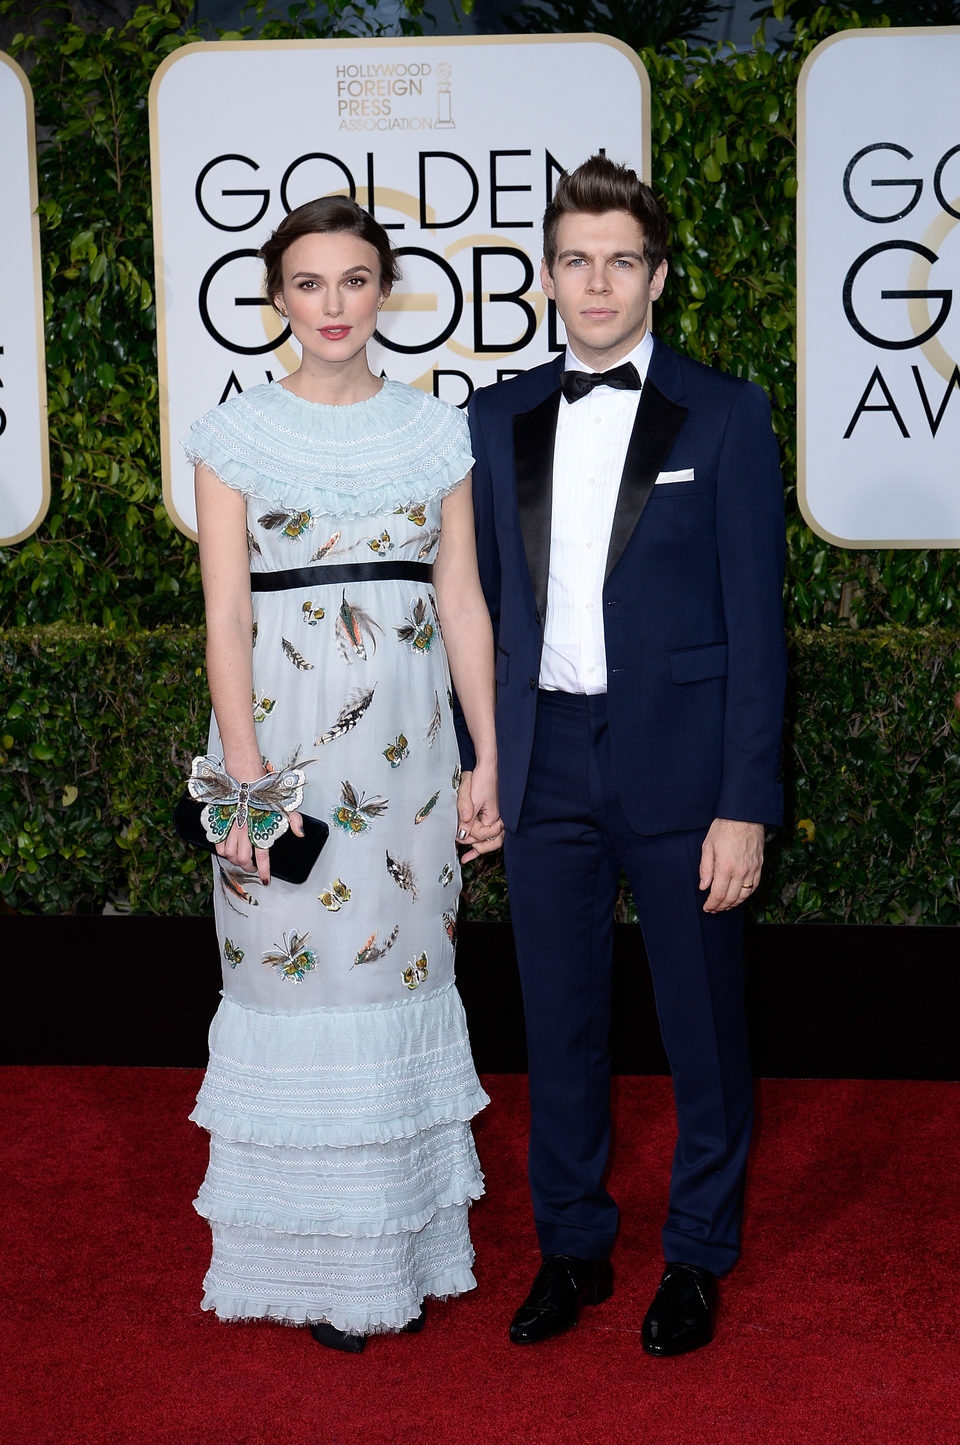 Keira Knightley and James Righton at the Golden Globes 2015 red carpet